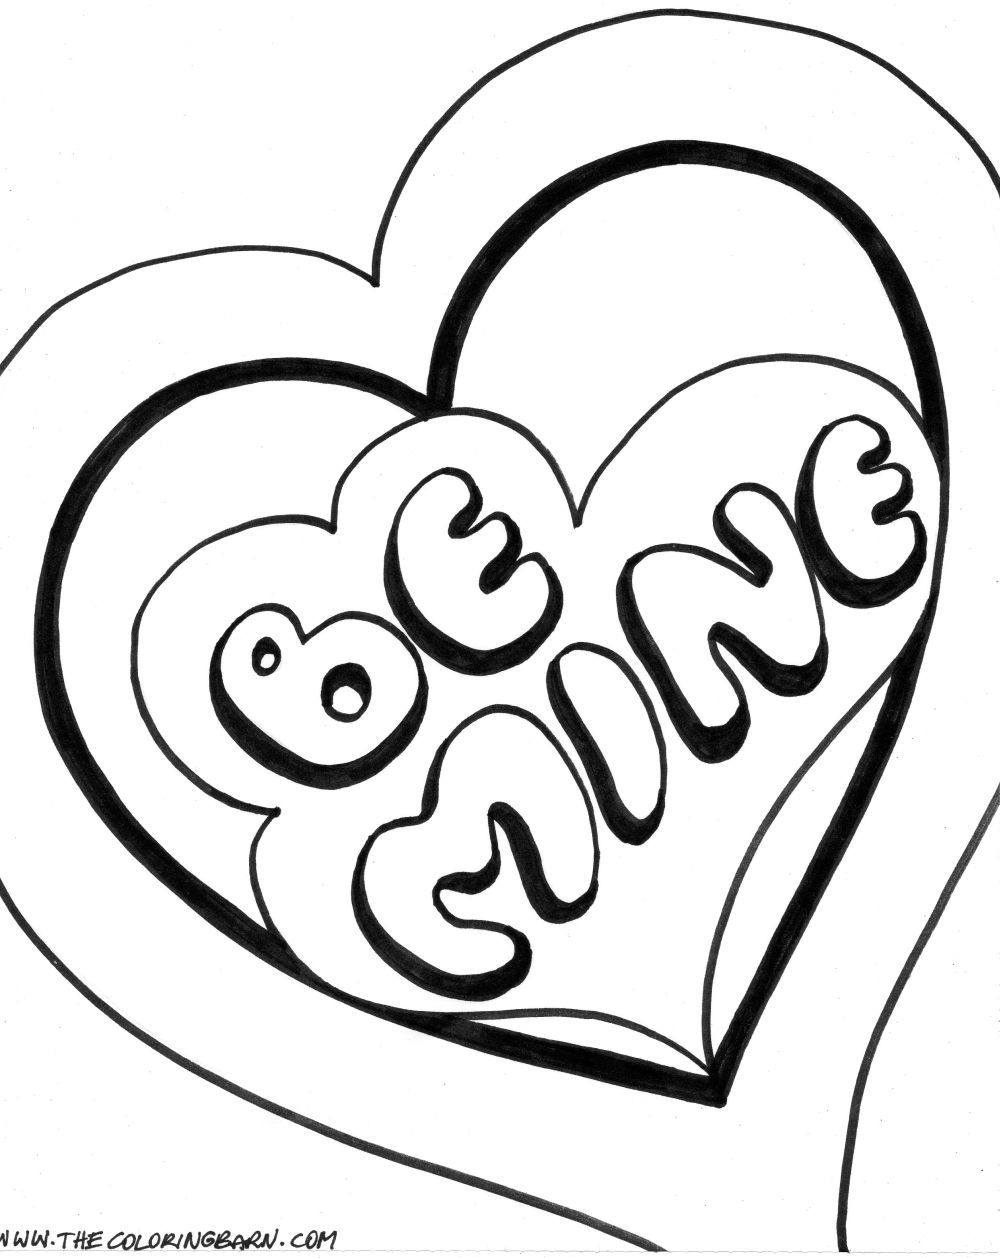 Valentines Day Coloring Pages Valentines Day Coloring Page Valentine Coloring Pages Fathers Day Coloring Page